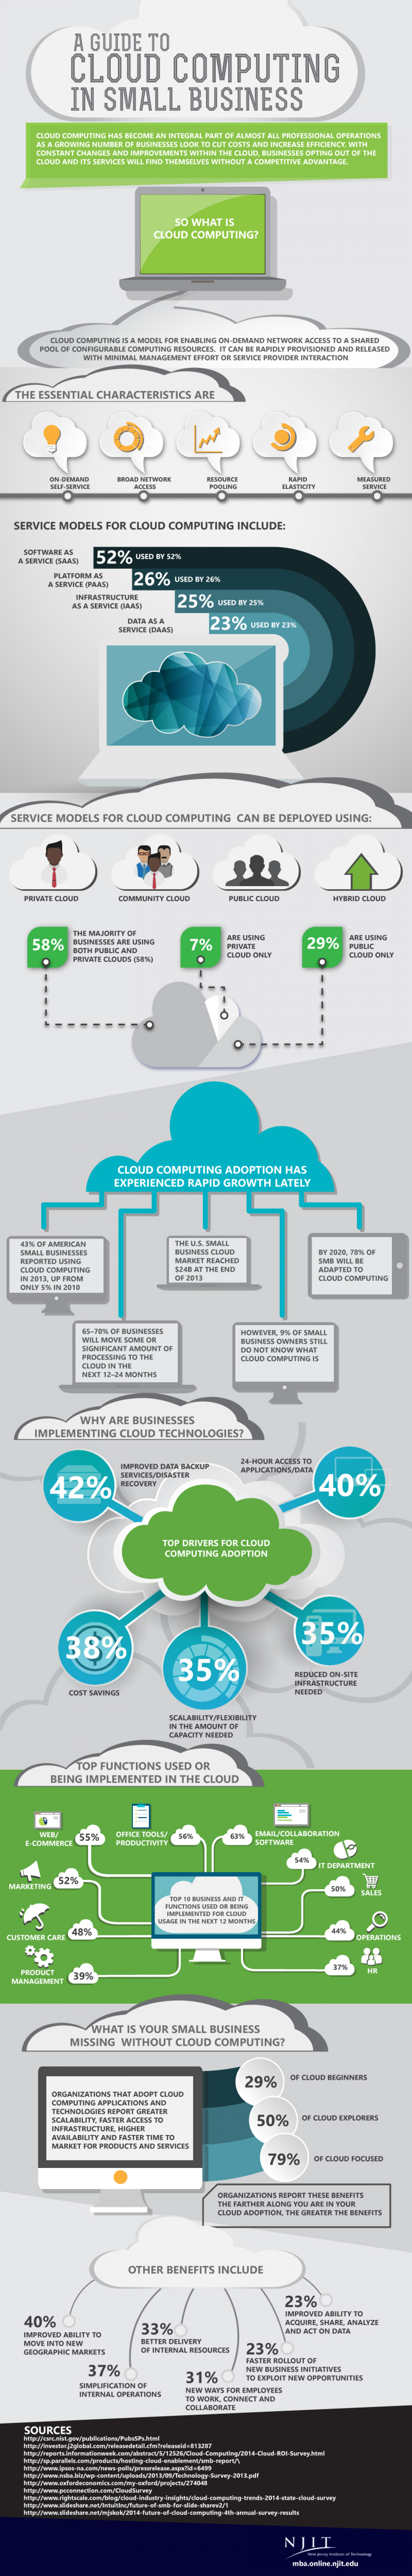 cloud computing in small organization essay Cloud computing cloud computing is the use of computing resources (hardware and software) that are delivered as a service over a network (typically the internet) the name comes from the use of a cloud-shaped symbol as an abstraction for the complex infrastructure it contains in system diagrams.